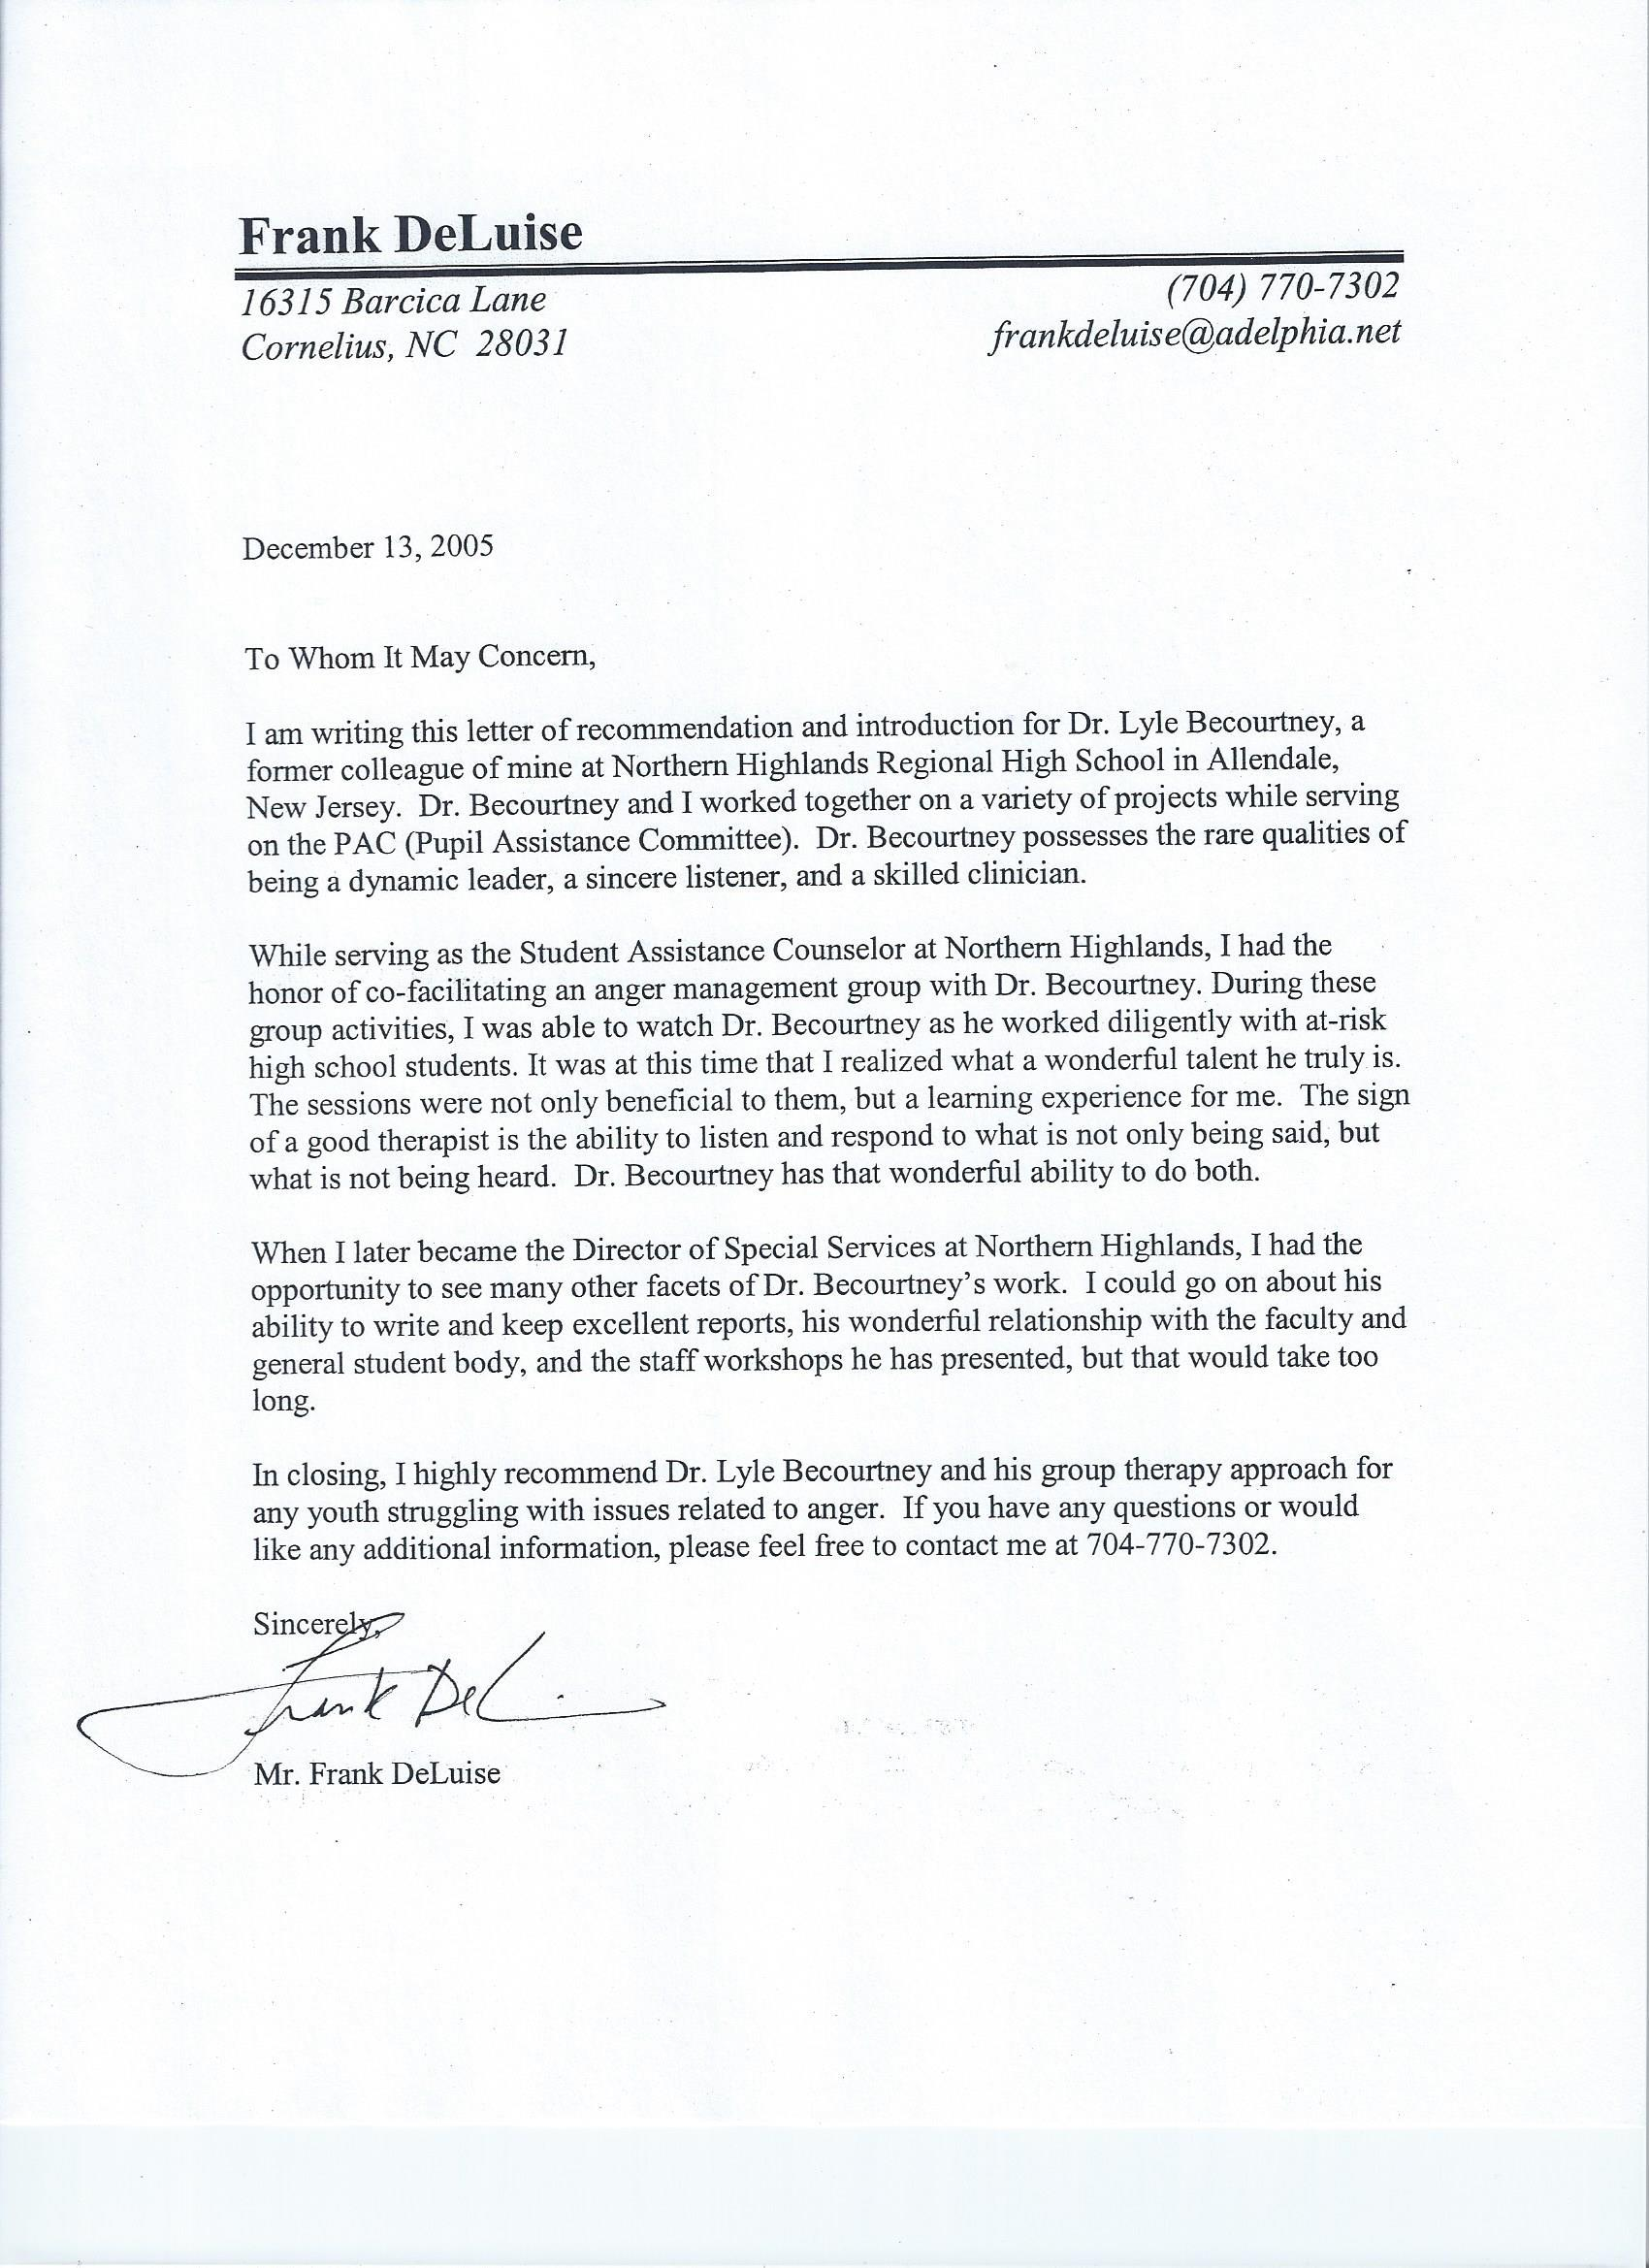 Letter of Reference from Frank DeLuise